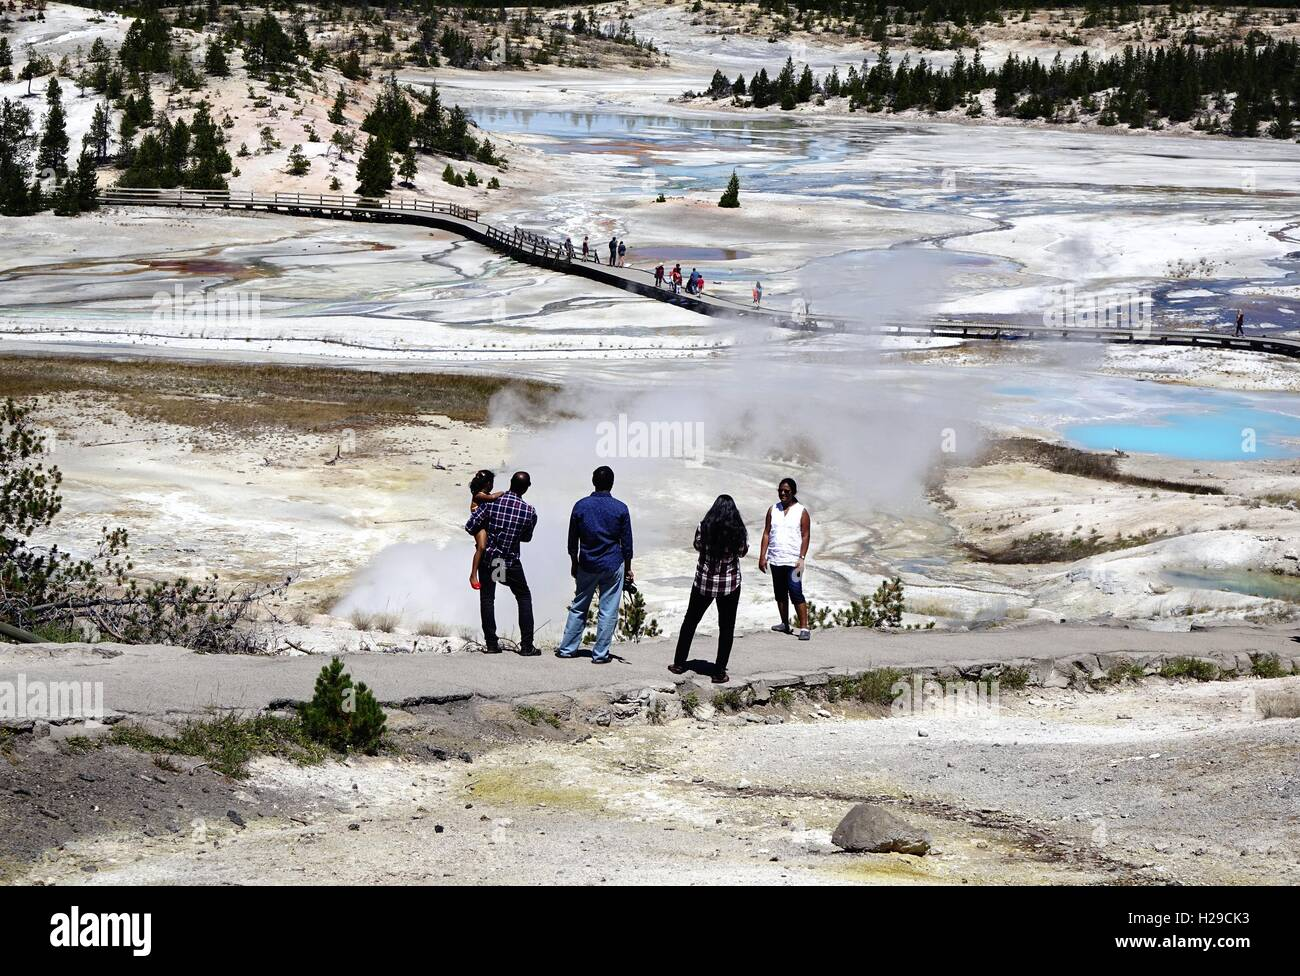 Visitors looking at a steam vent, Porcelain basin, Norris Geyser Basin, Yellowstone National Park - Stock Image